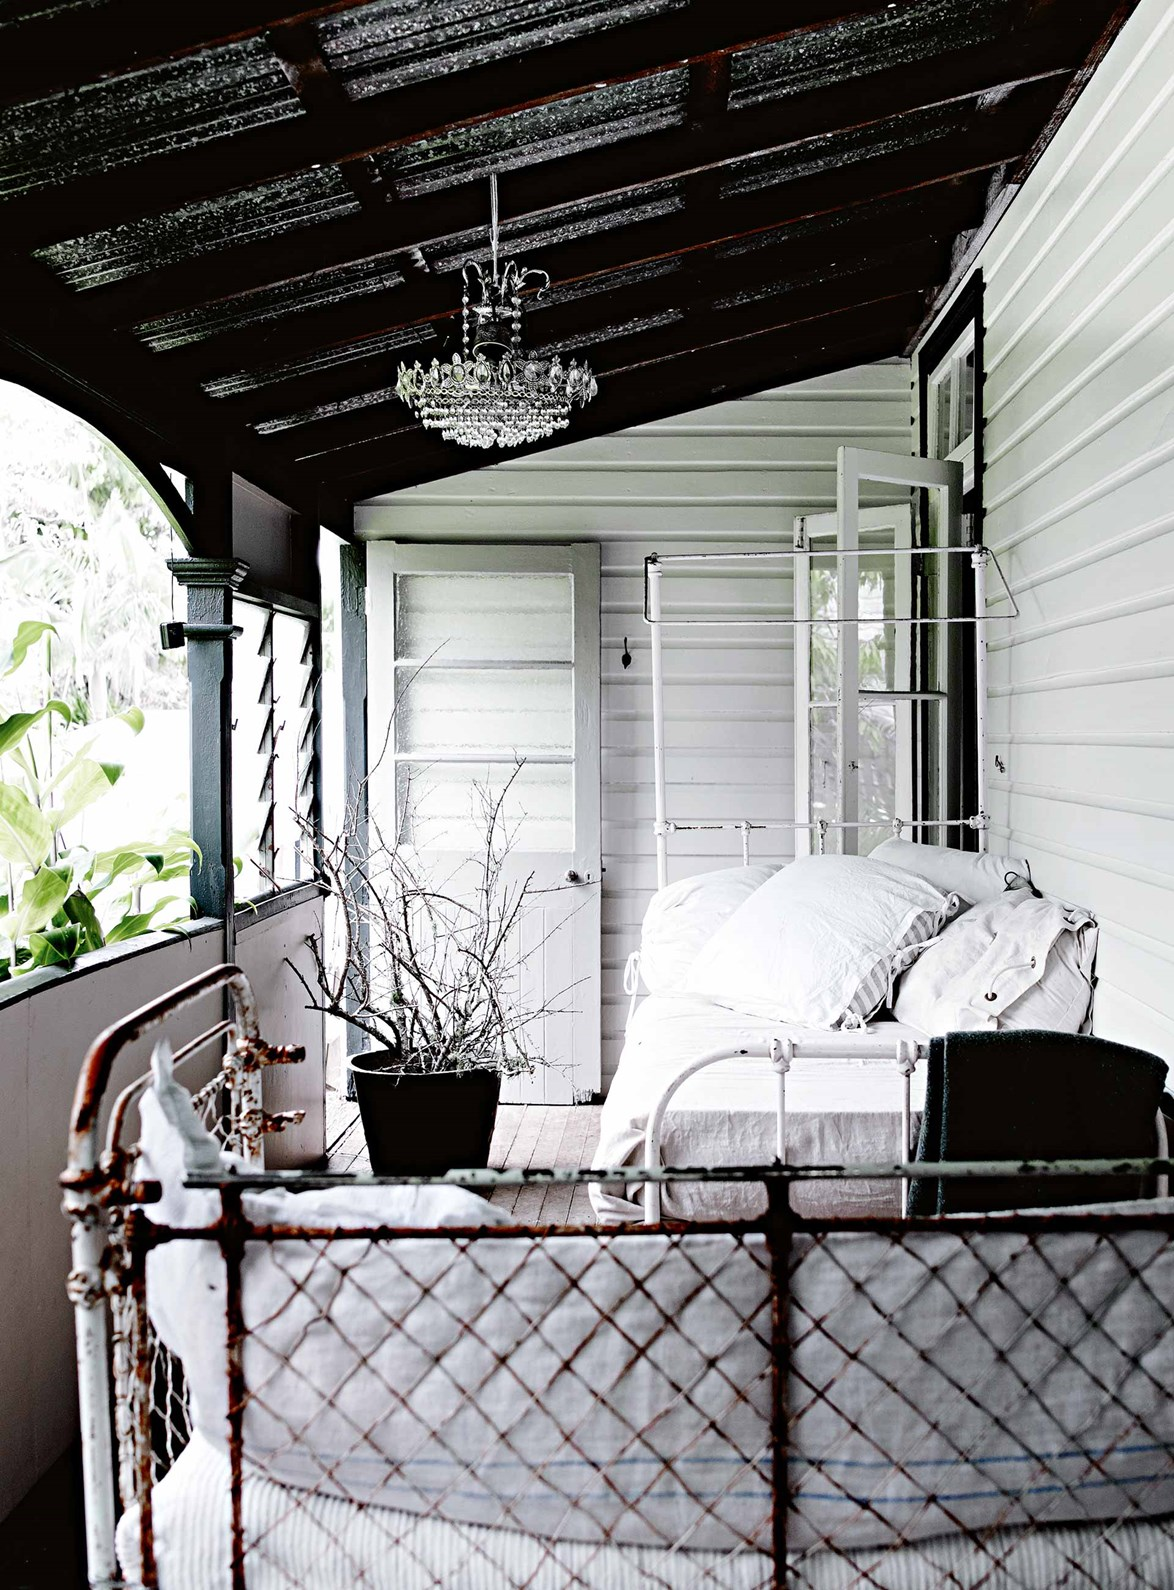 "Comfy vintage daybeds and a sparkling chandelier have transformed an old verandah into a shabby chic retreat. That's because the verandah is where [Byron Bay homeowner and dressmaker](https://www.homestolove.com.au/dressmakers-white-vintage-interior-in-the-byron-bay-hinterland-13719|target=""_blank"") Michelle Douglas does the majority of her work, designing and sewing clothing for her two labels [Meg By Design](https://megbydesign.com/